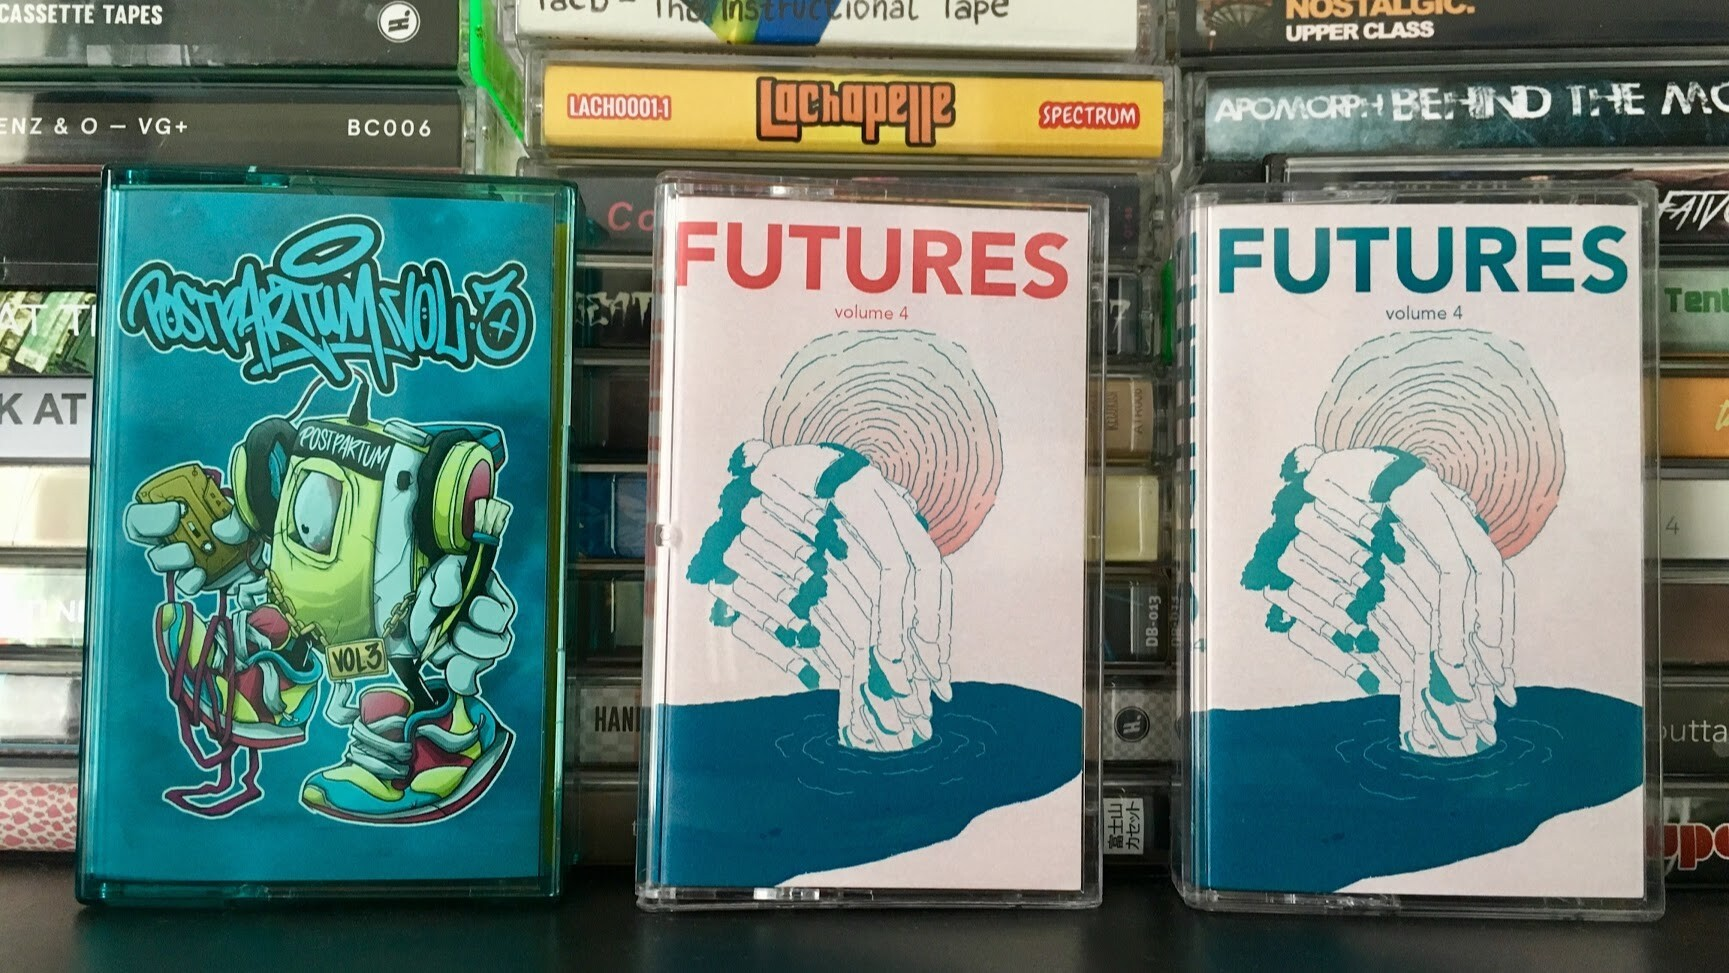 POSTPARTUM Vol. 3 und FUTURES Vol. 4 - Tapes 21